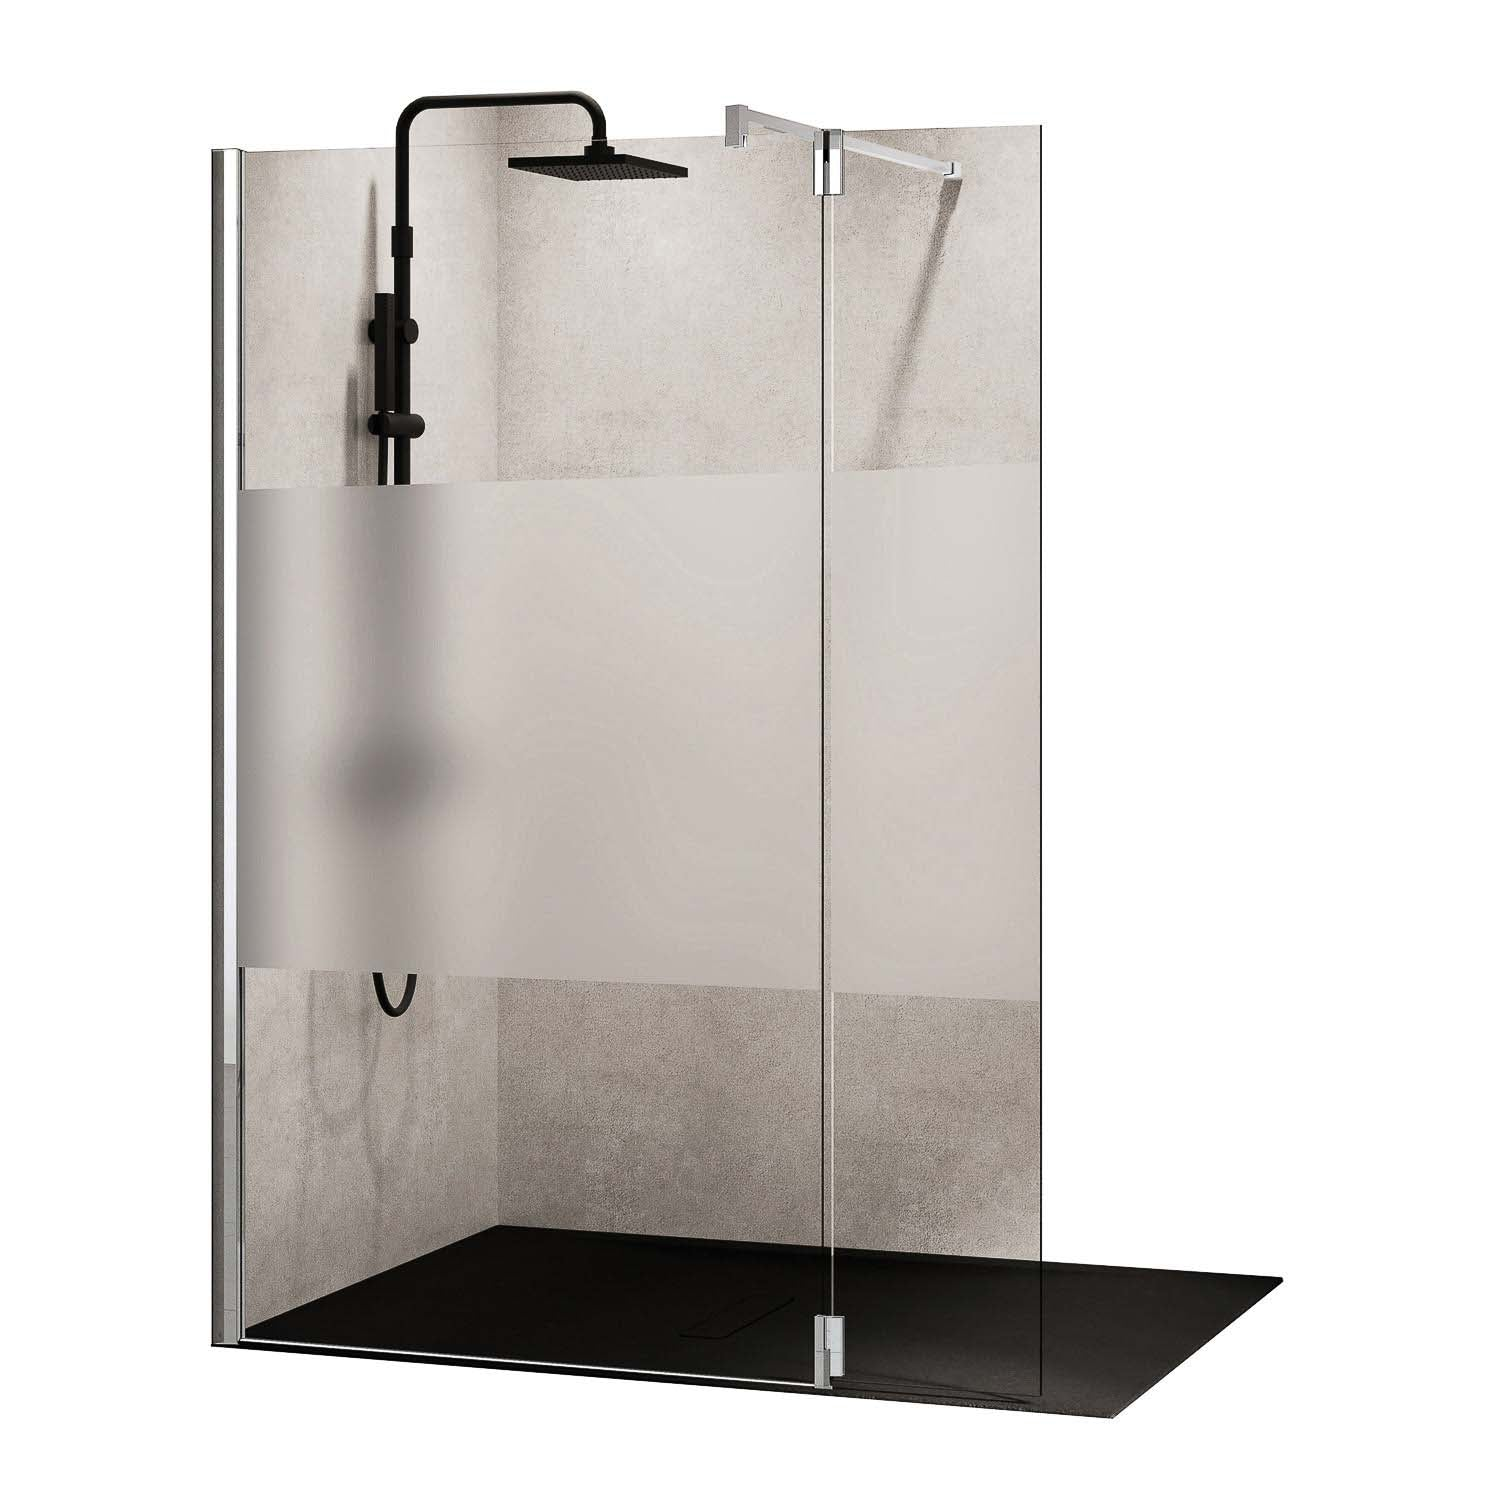 770-800mm Ergo Wet Room Screen Satin Band Glass with a chrome finish on a white background